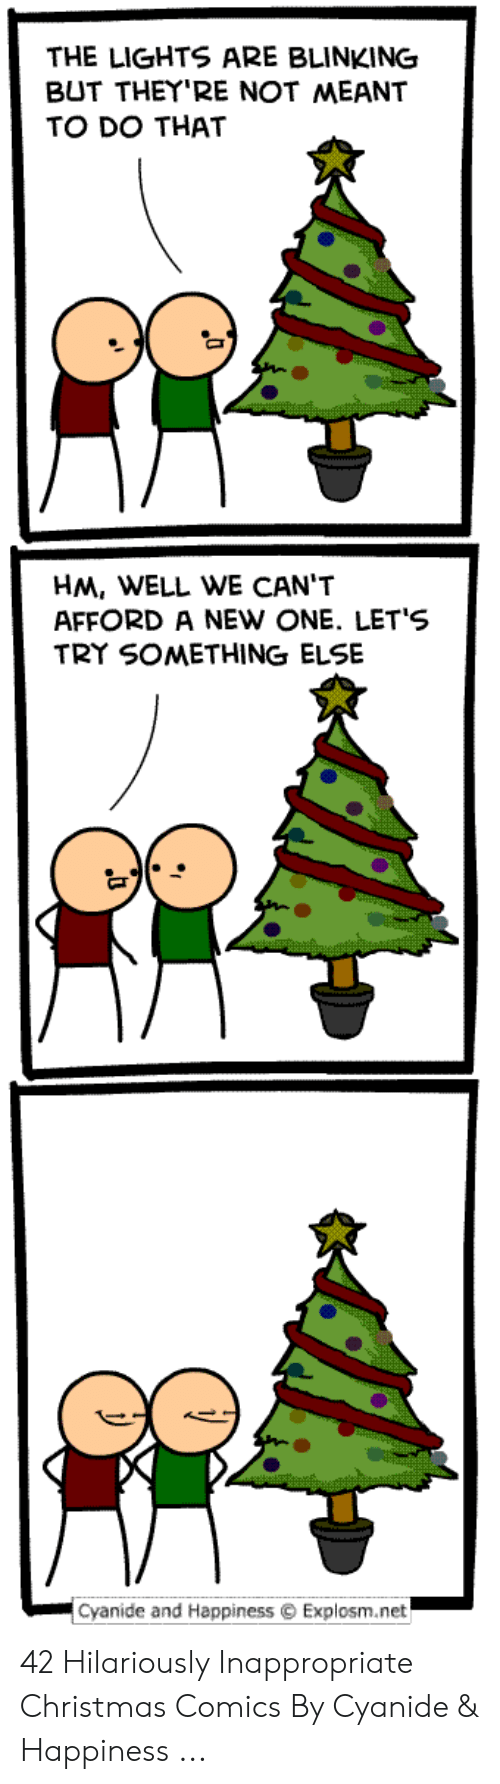 Hilariously Inappropriate: THE LIGHTS ARE BLINKING  BUT THEY'RE NOT MEANT  TO DO THAT  HM, WELL WE CAN'T  AFFORD A NEW ONE. LET'S  TRY SOMETHING ELSE  Cyanide and Happiness  Explosm.net 42 Hilariously Inappropriate Christmas Comics By Cyanide & Happiness ...